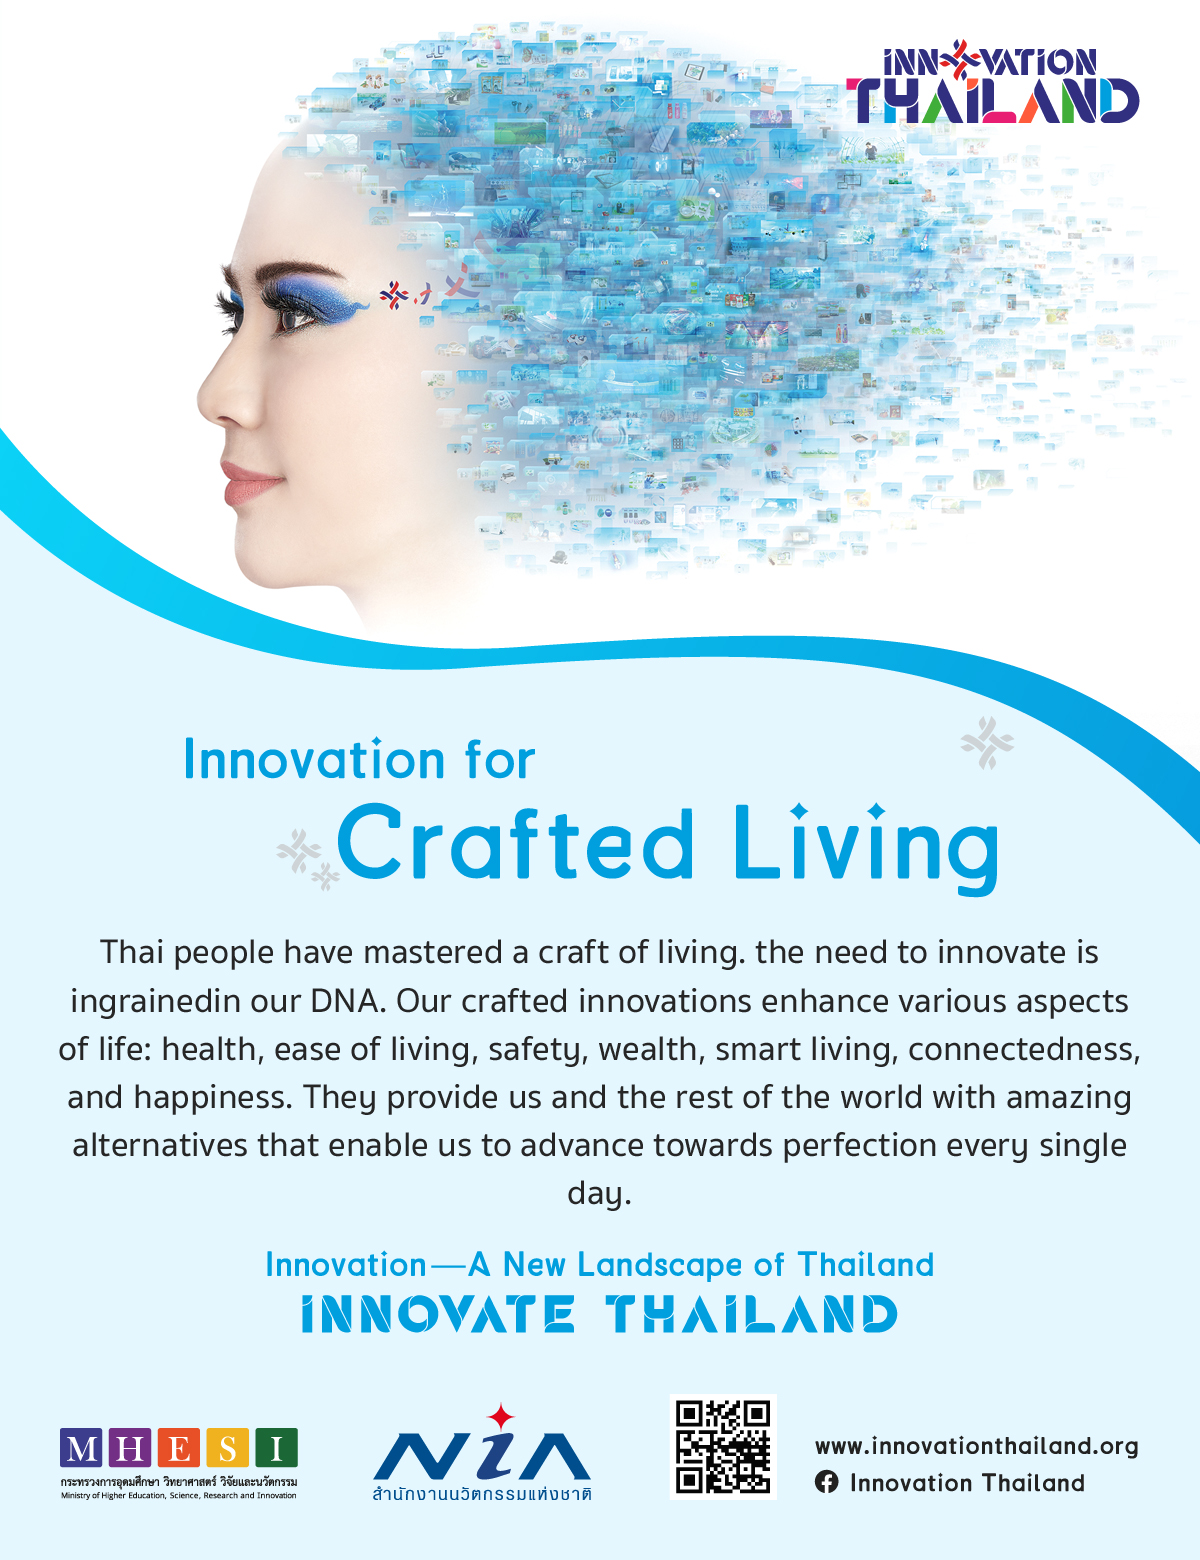 innovation-for-ready-crafted-living